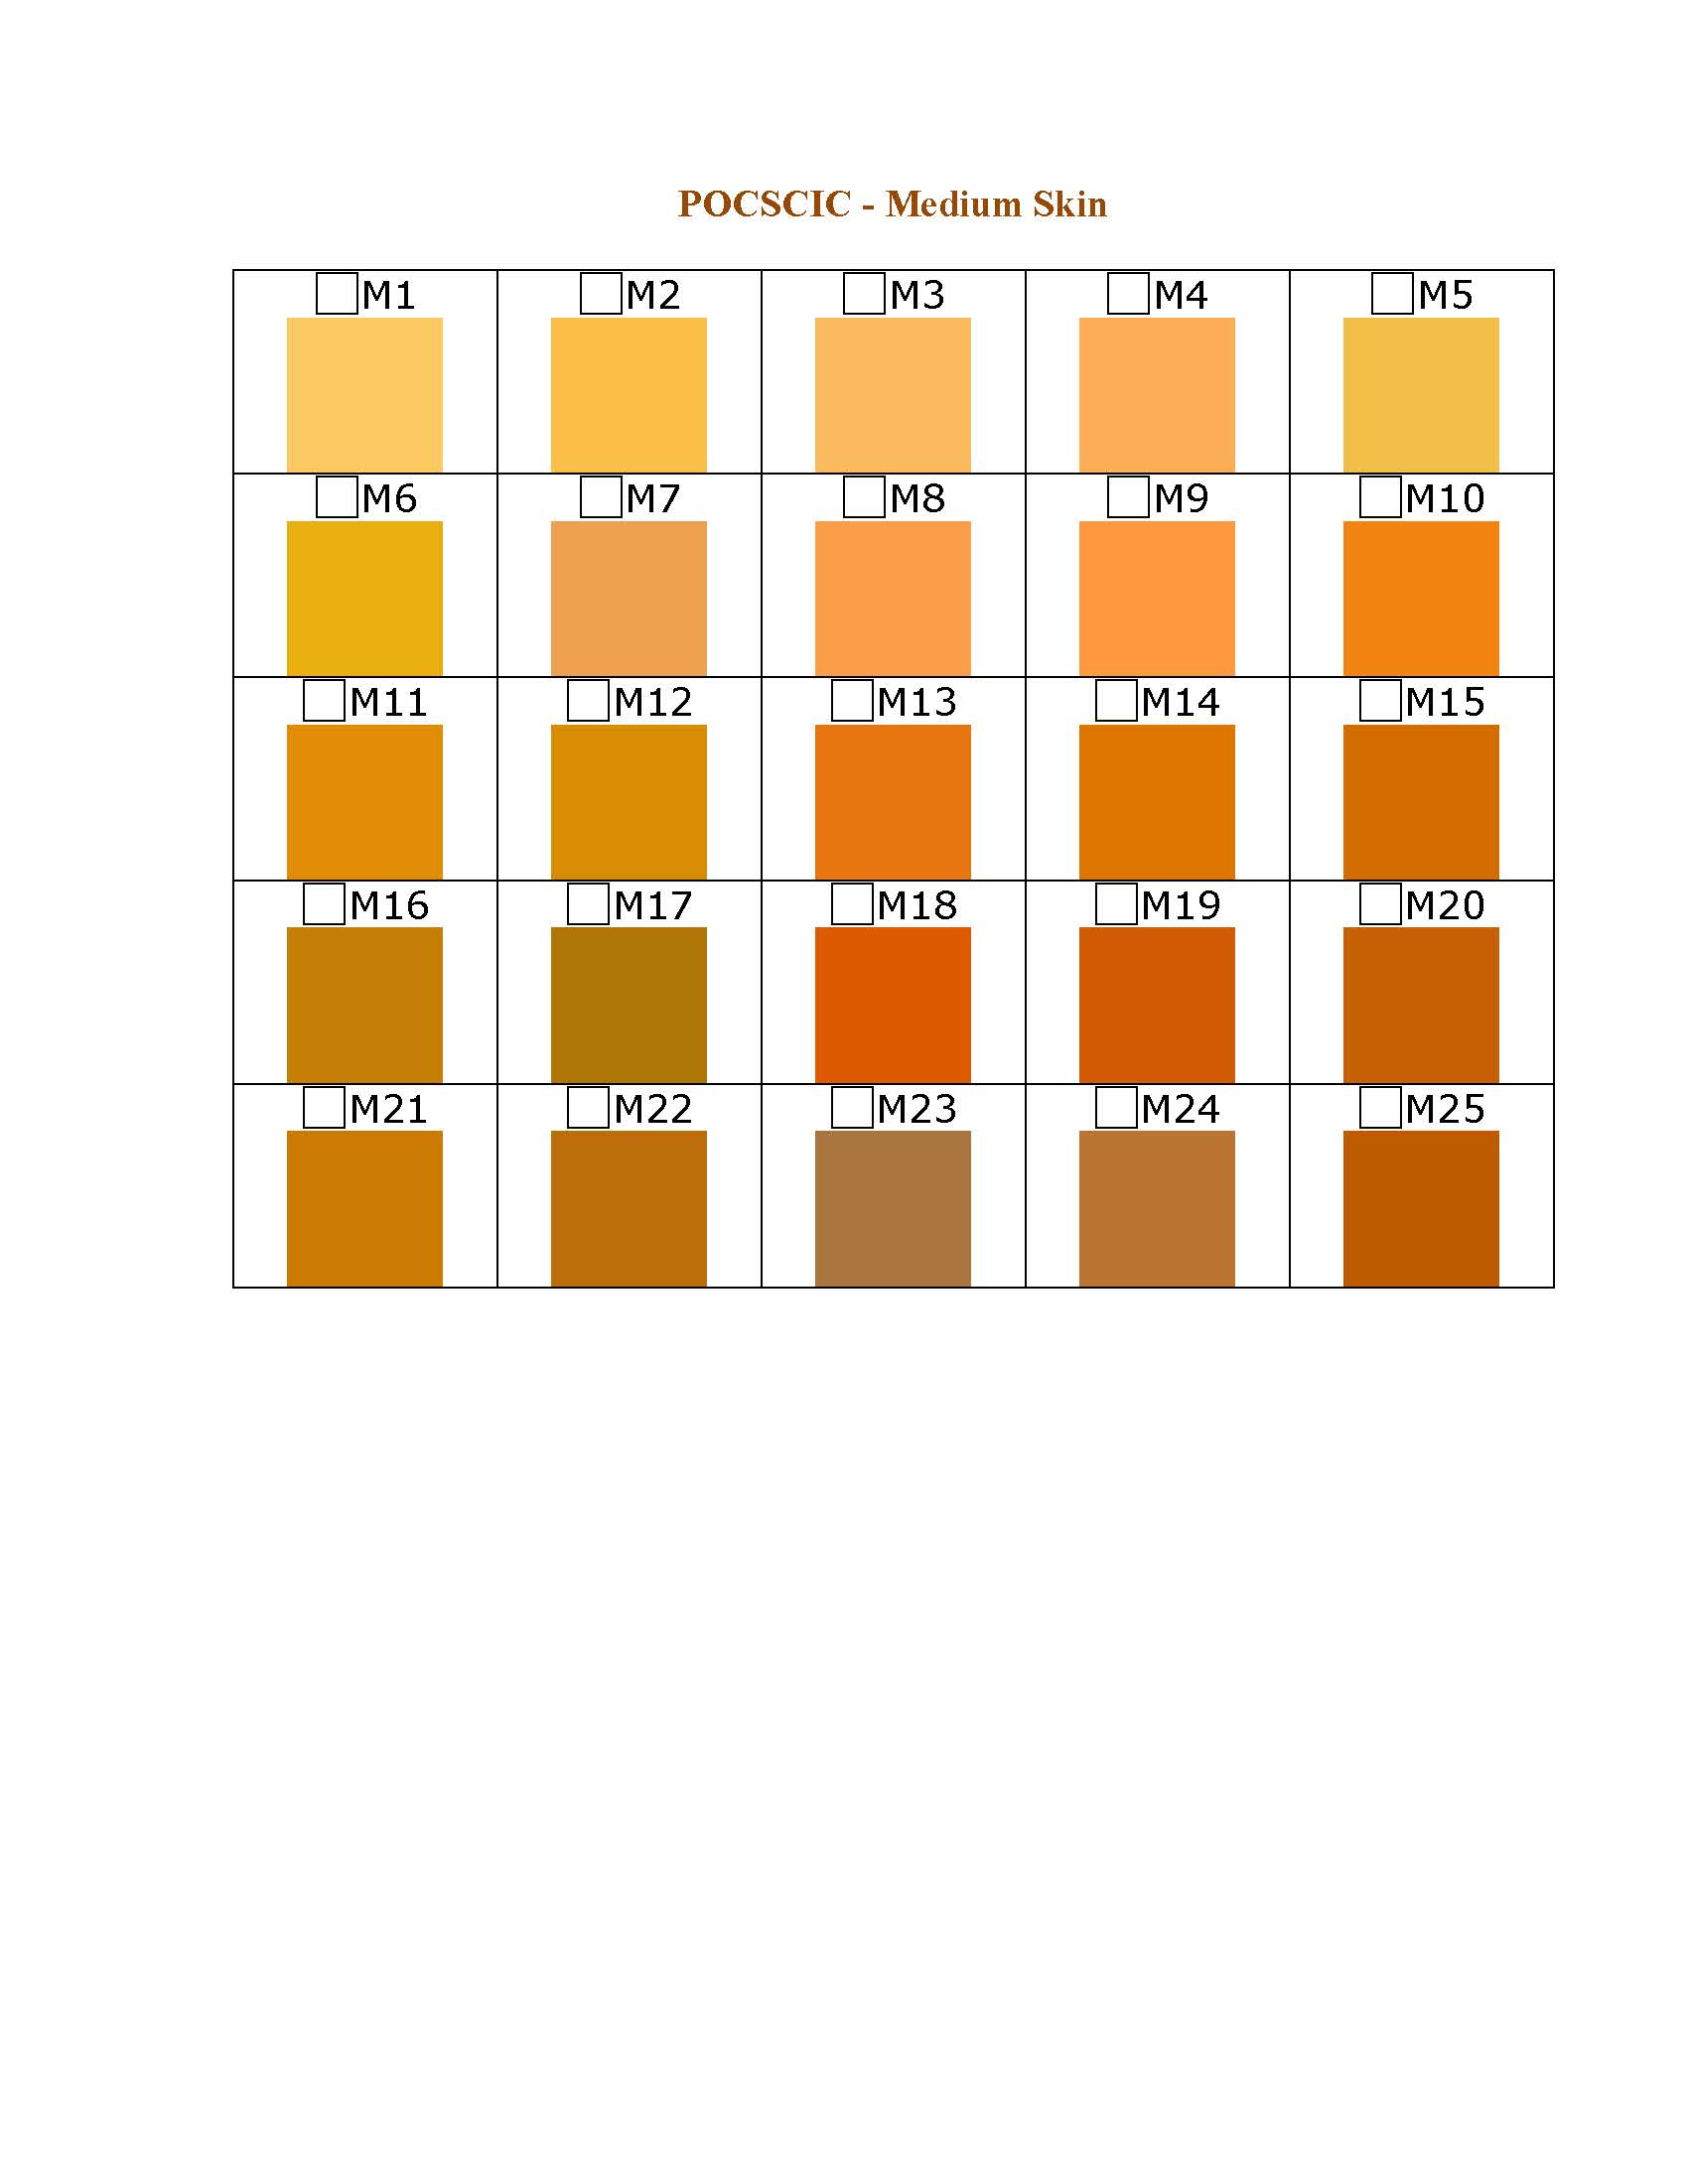 Medium Skin Color.<br><br>Using the Medium POCSCIC below, identify the color that represents your skin color and enter the code (I.E. M4) in Question No. 10.  (Colors will vary depending on the screen resolution/monitor)